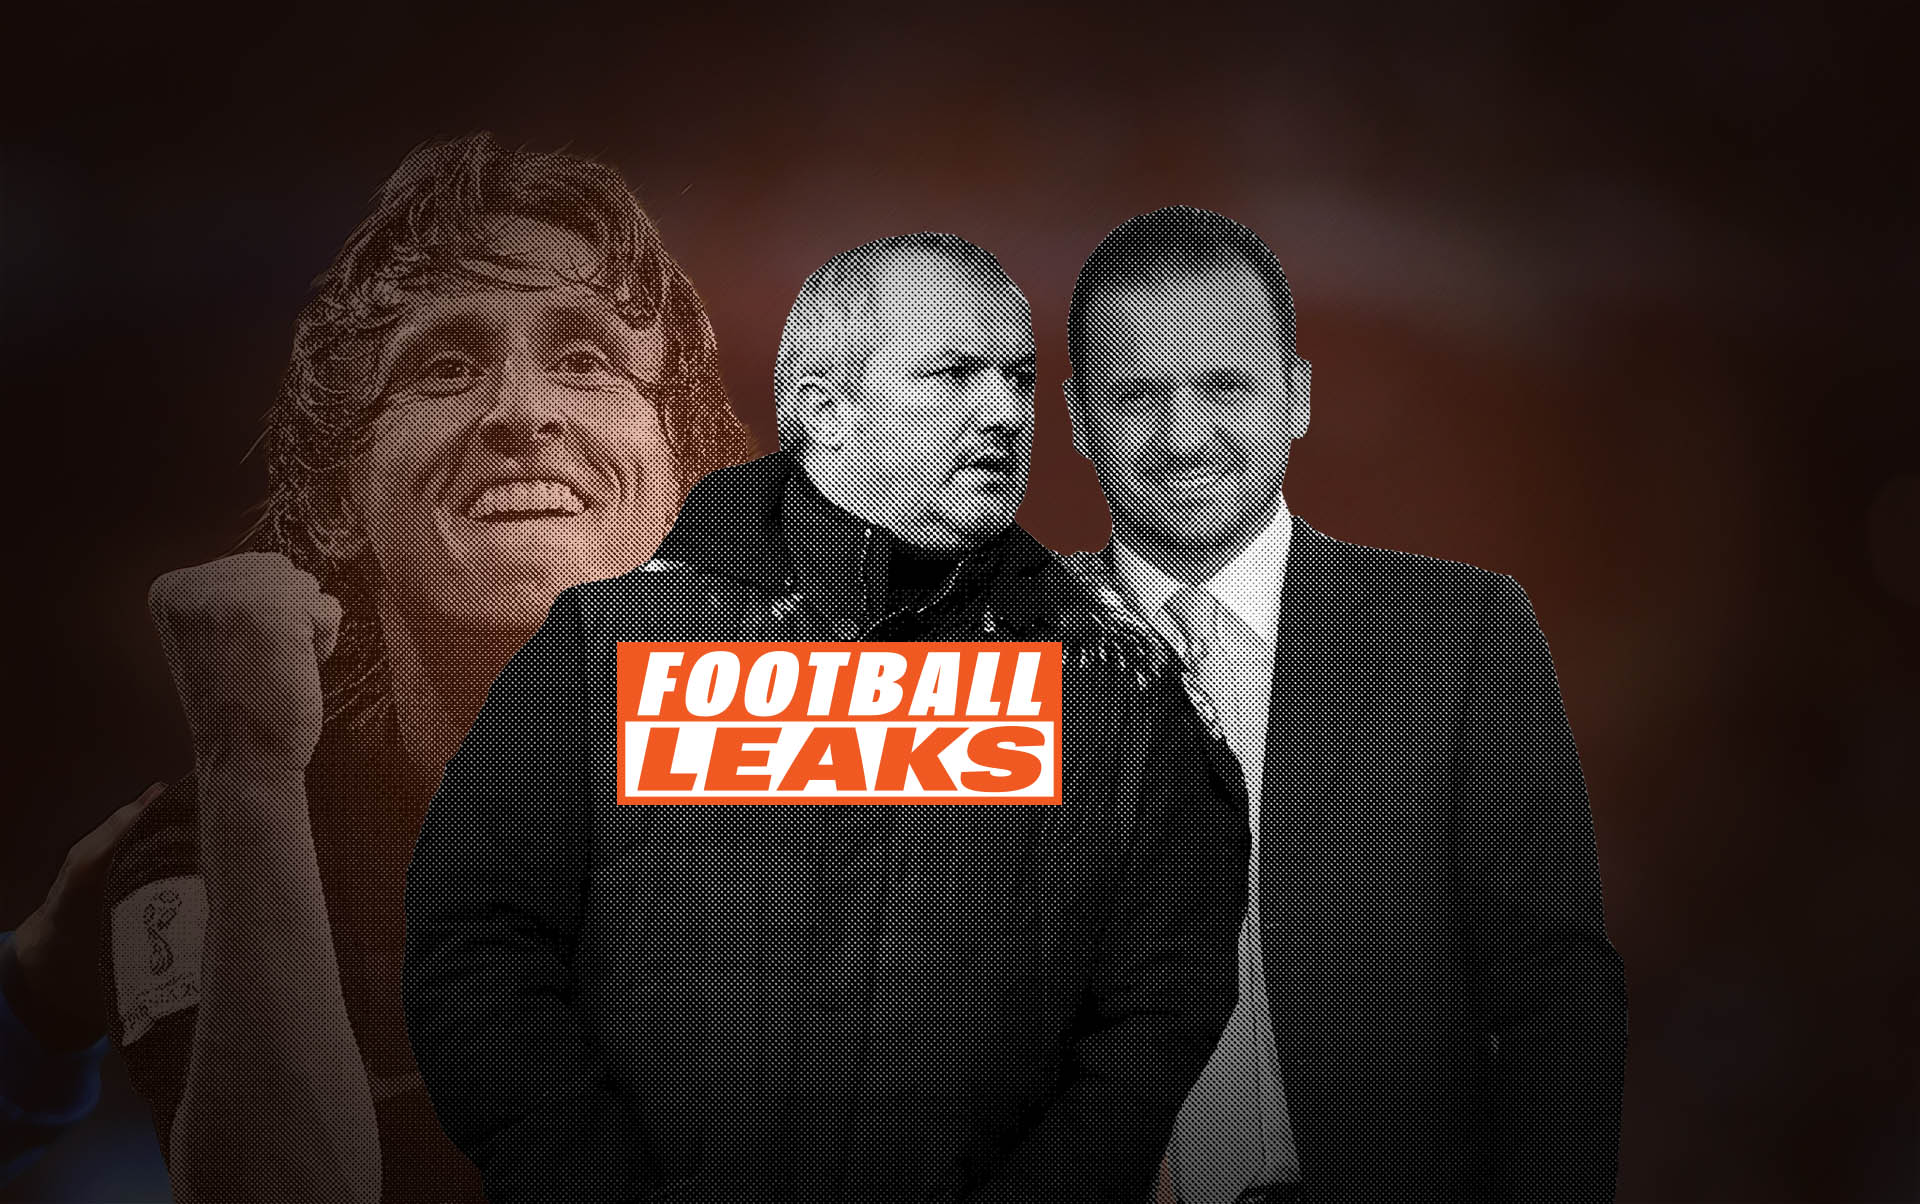 FOOTBALL LEAKS Massive tax fraud of Luka Modrić's agents Vladica Lemić and Pedja Mijatović